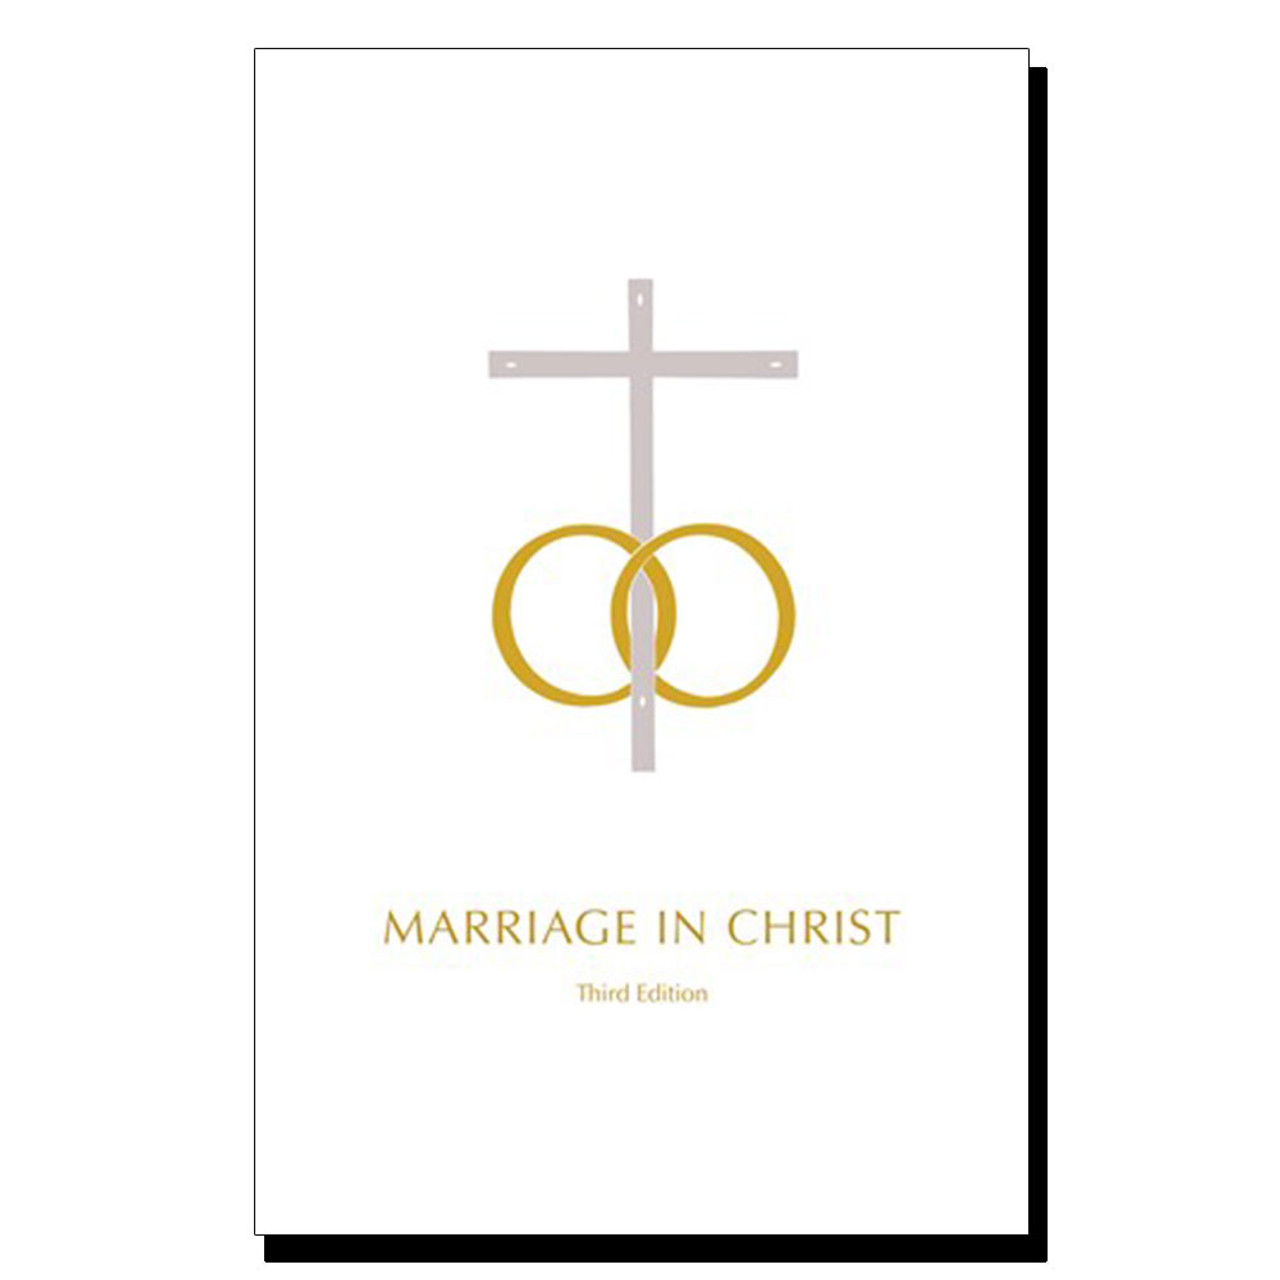 Marriage in Christ 2nd Edition